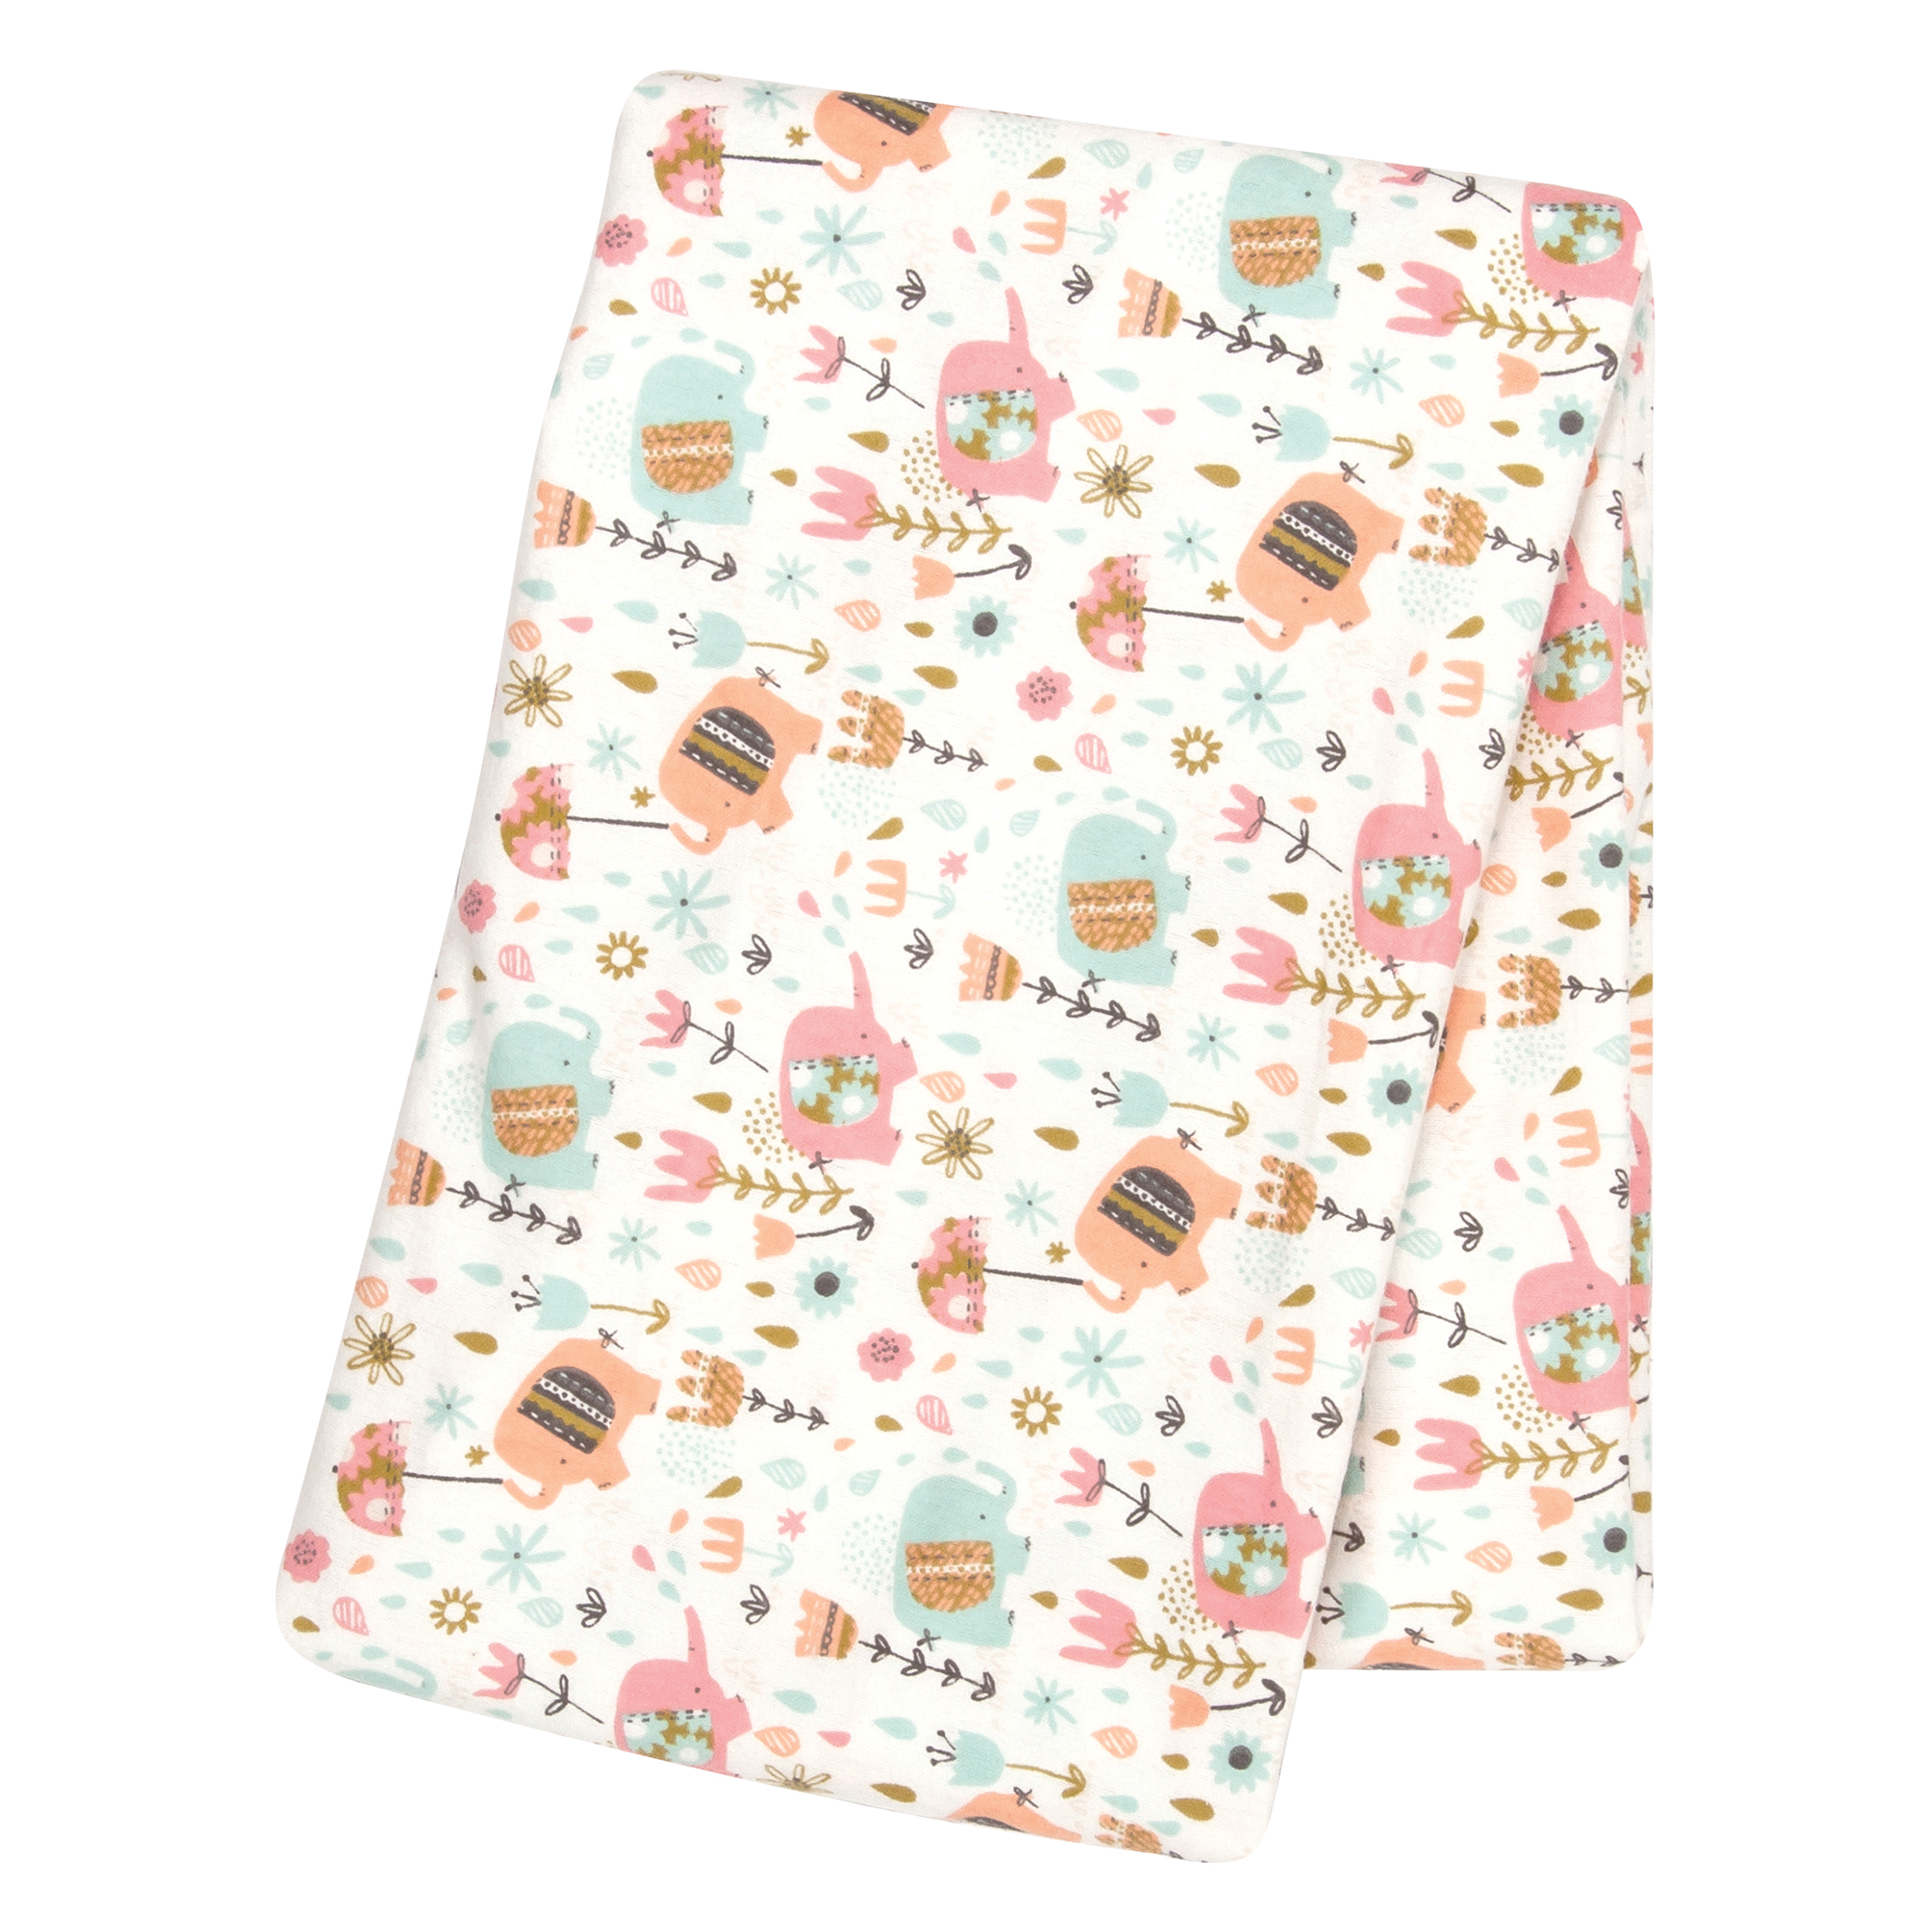 Playful Elephants Deluxe Flannel Swaddle Blanket